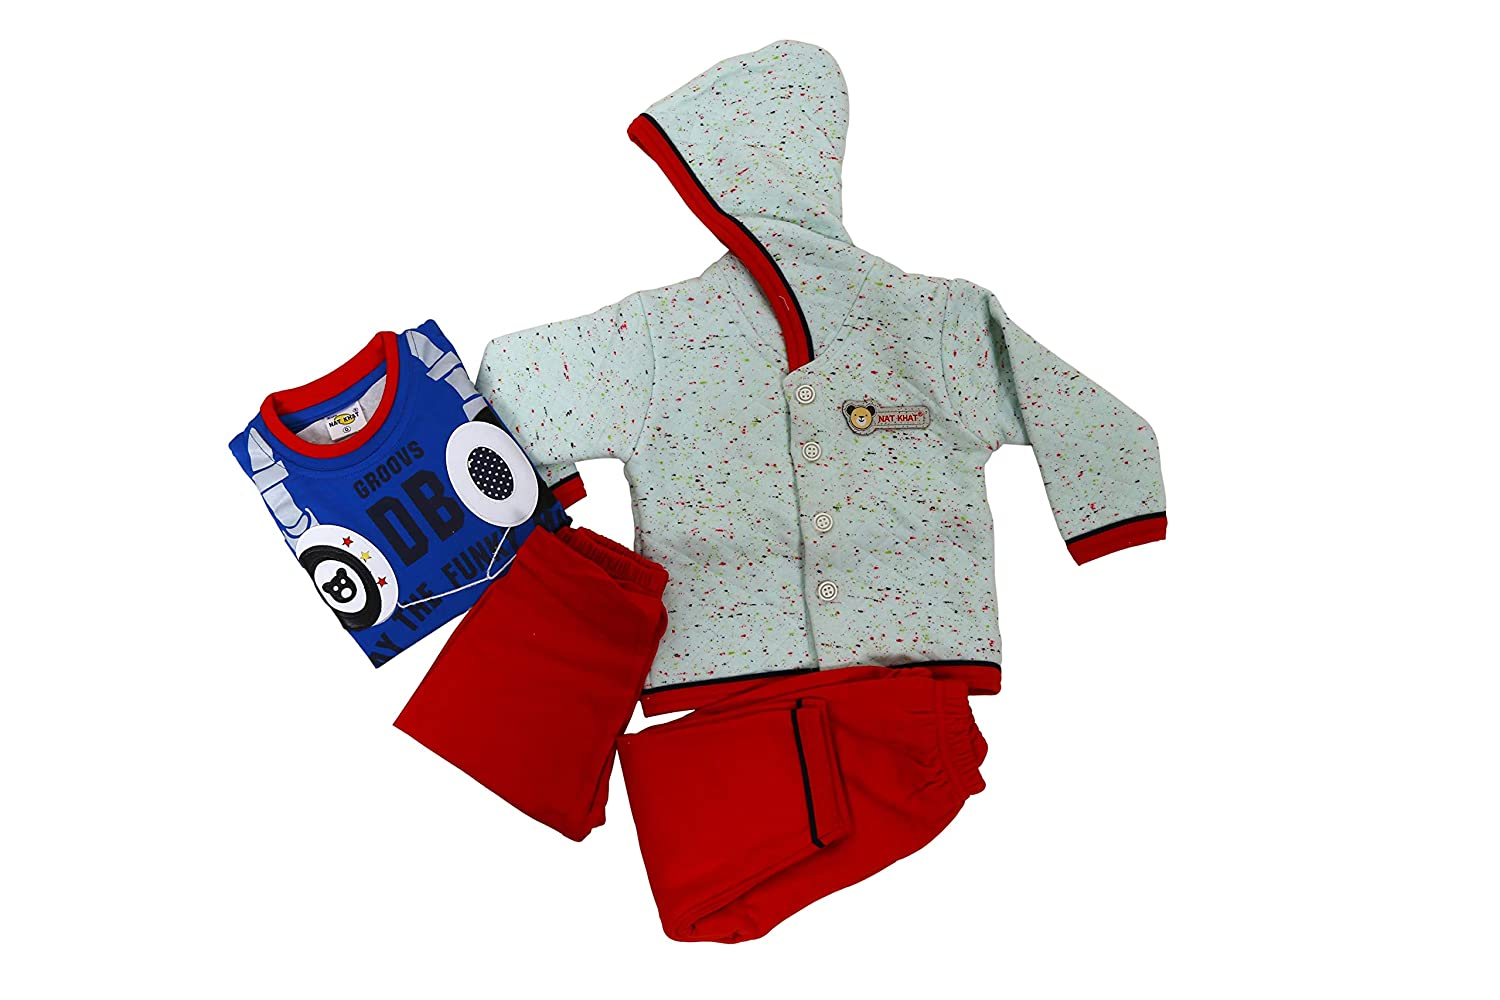 Baby Kid's Cotton Combo Pack of 2 Clothing Set for New Born Bay (2 Top and 2 Bottom) (Multicolor,0-3 Months)